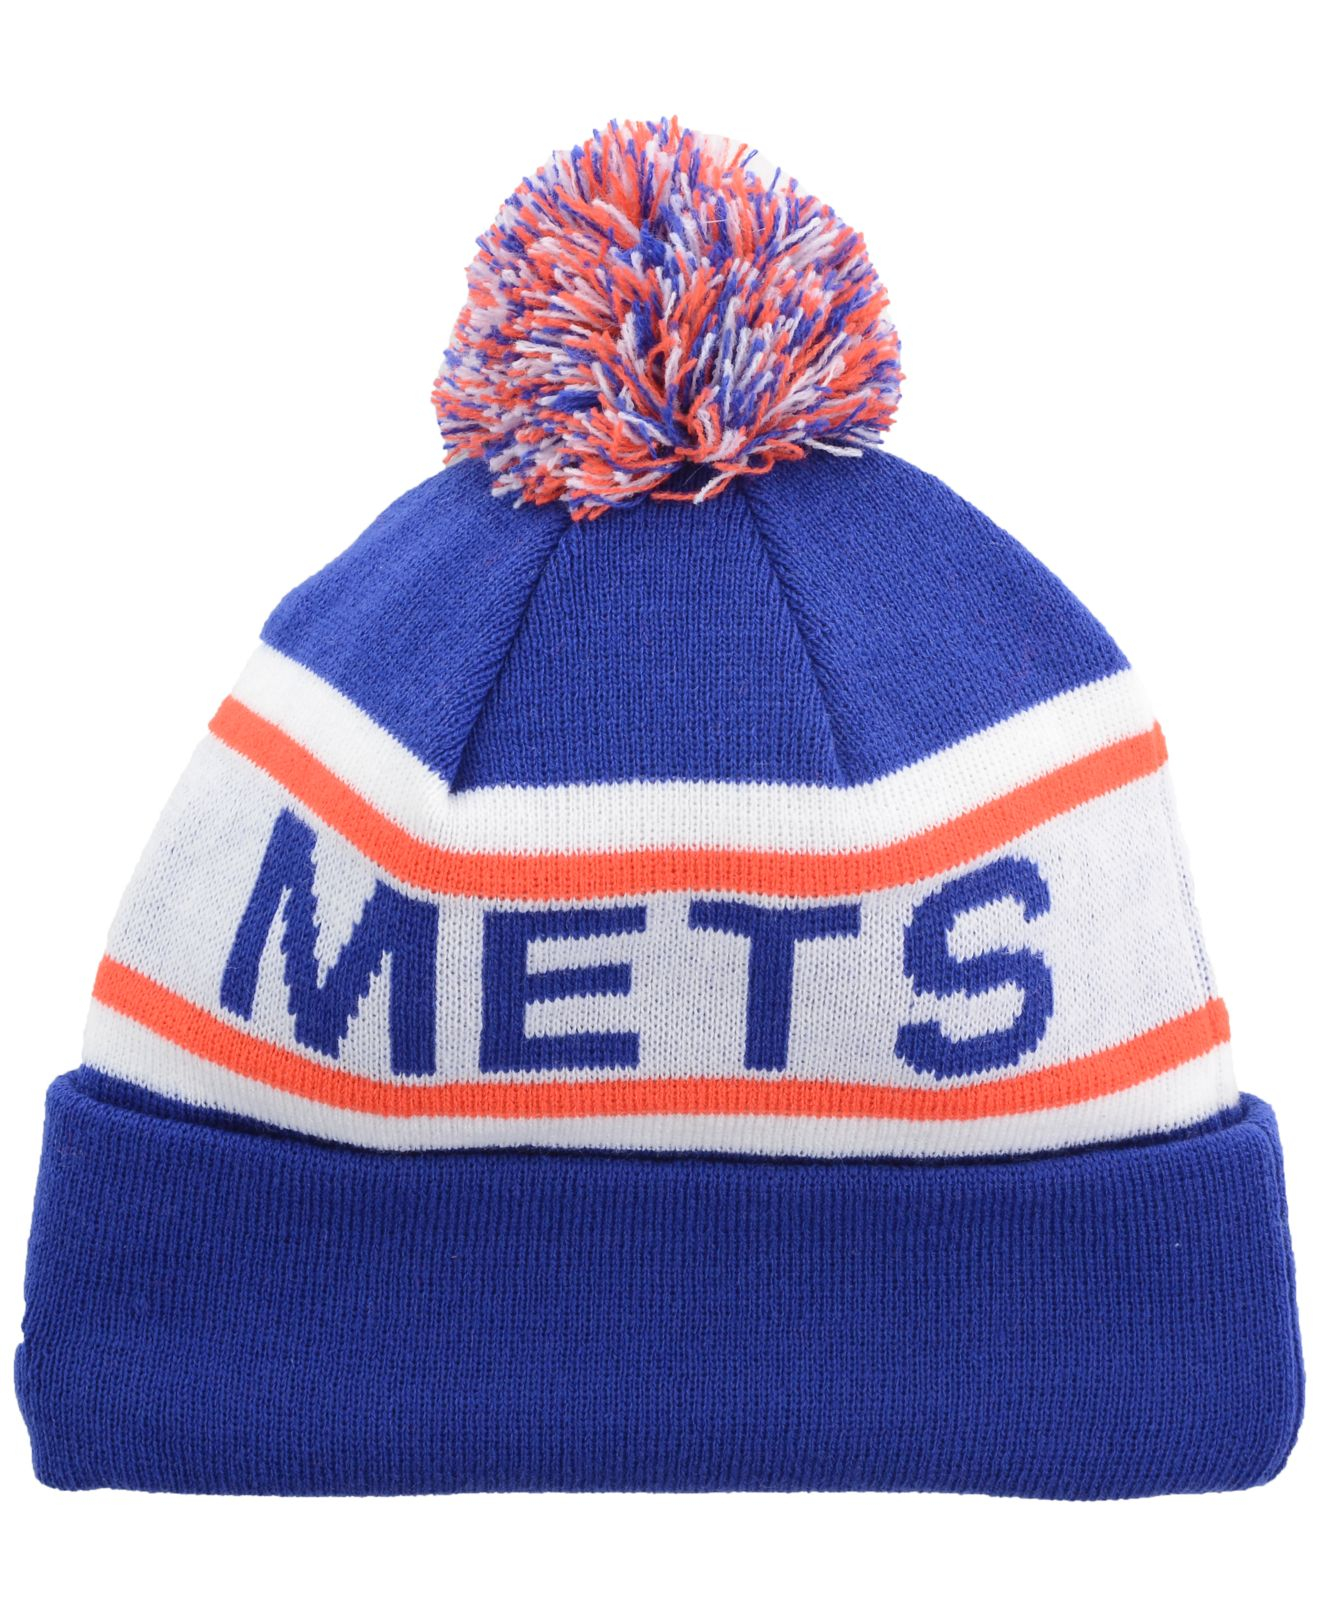 6387a84c3 low cost new york mets knit 79525 ba8b2